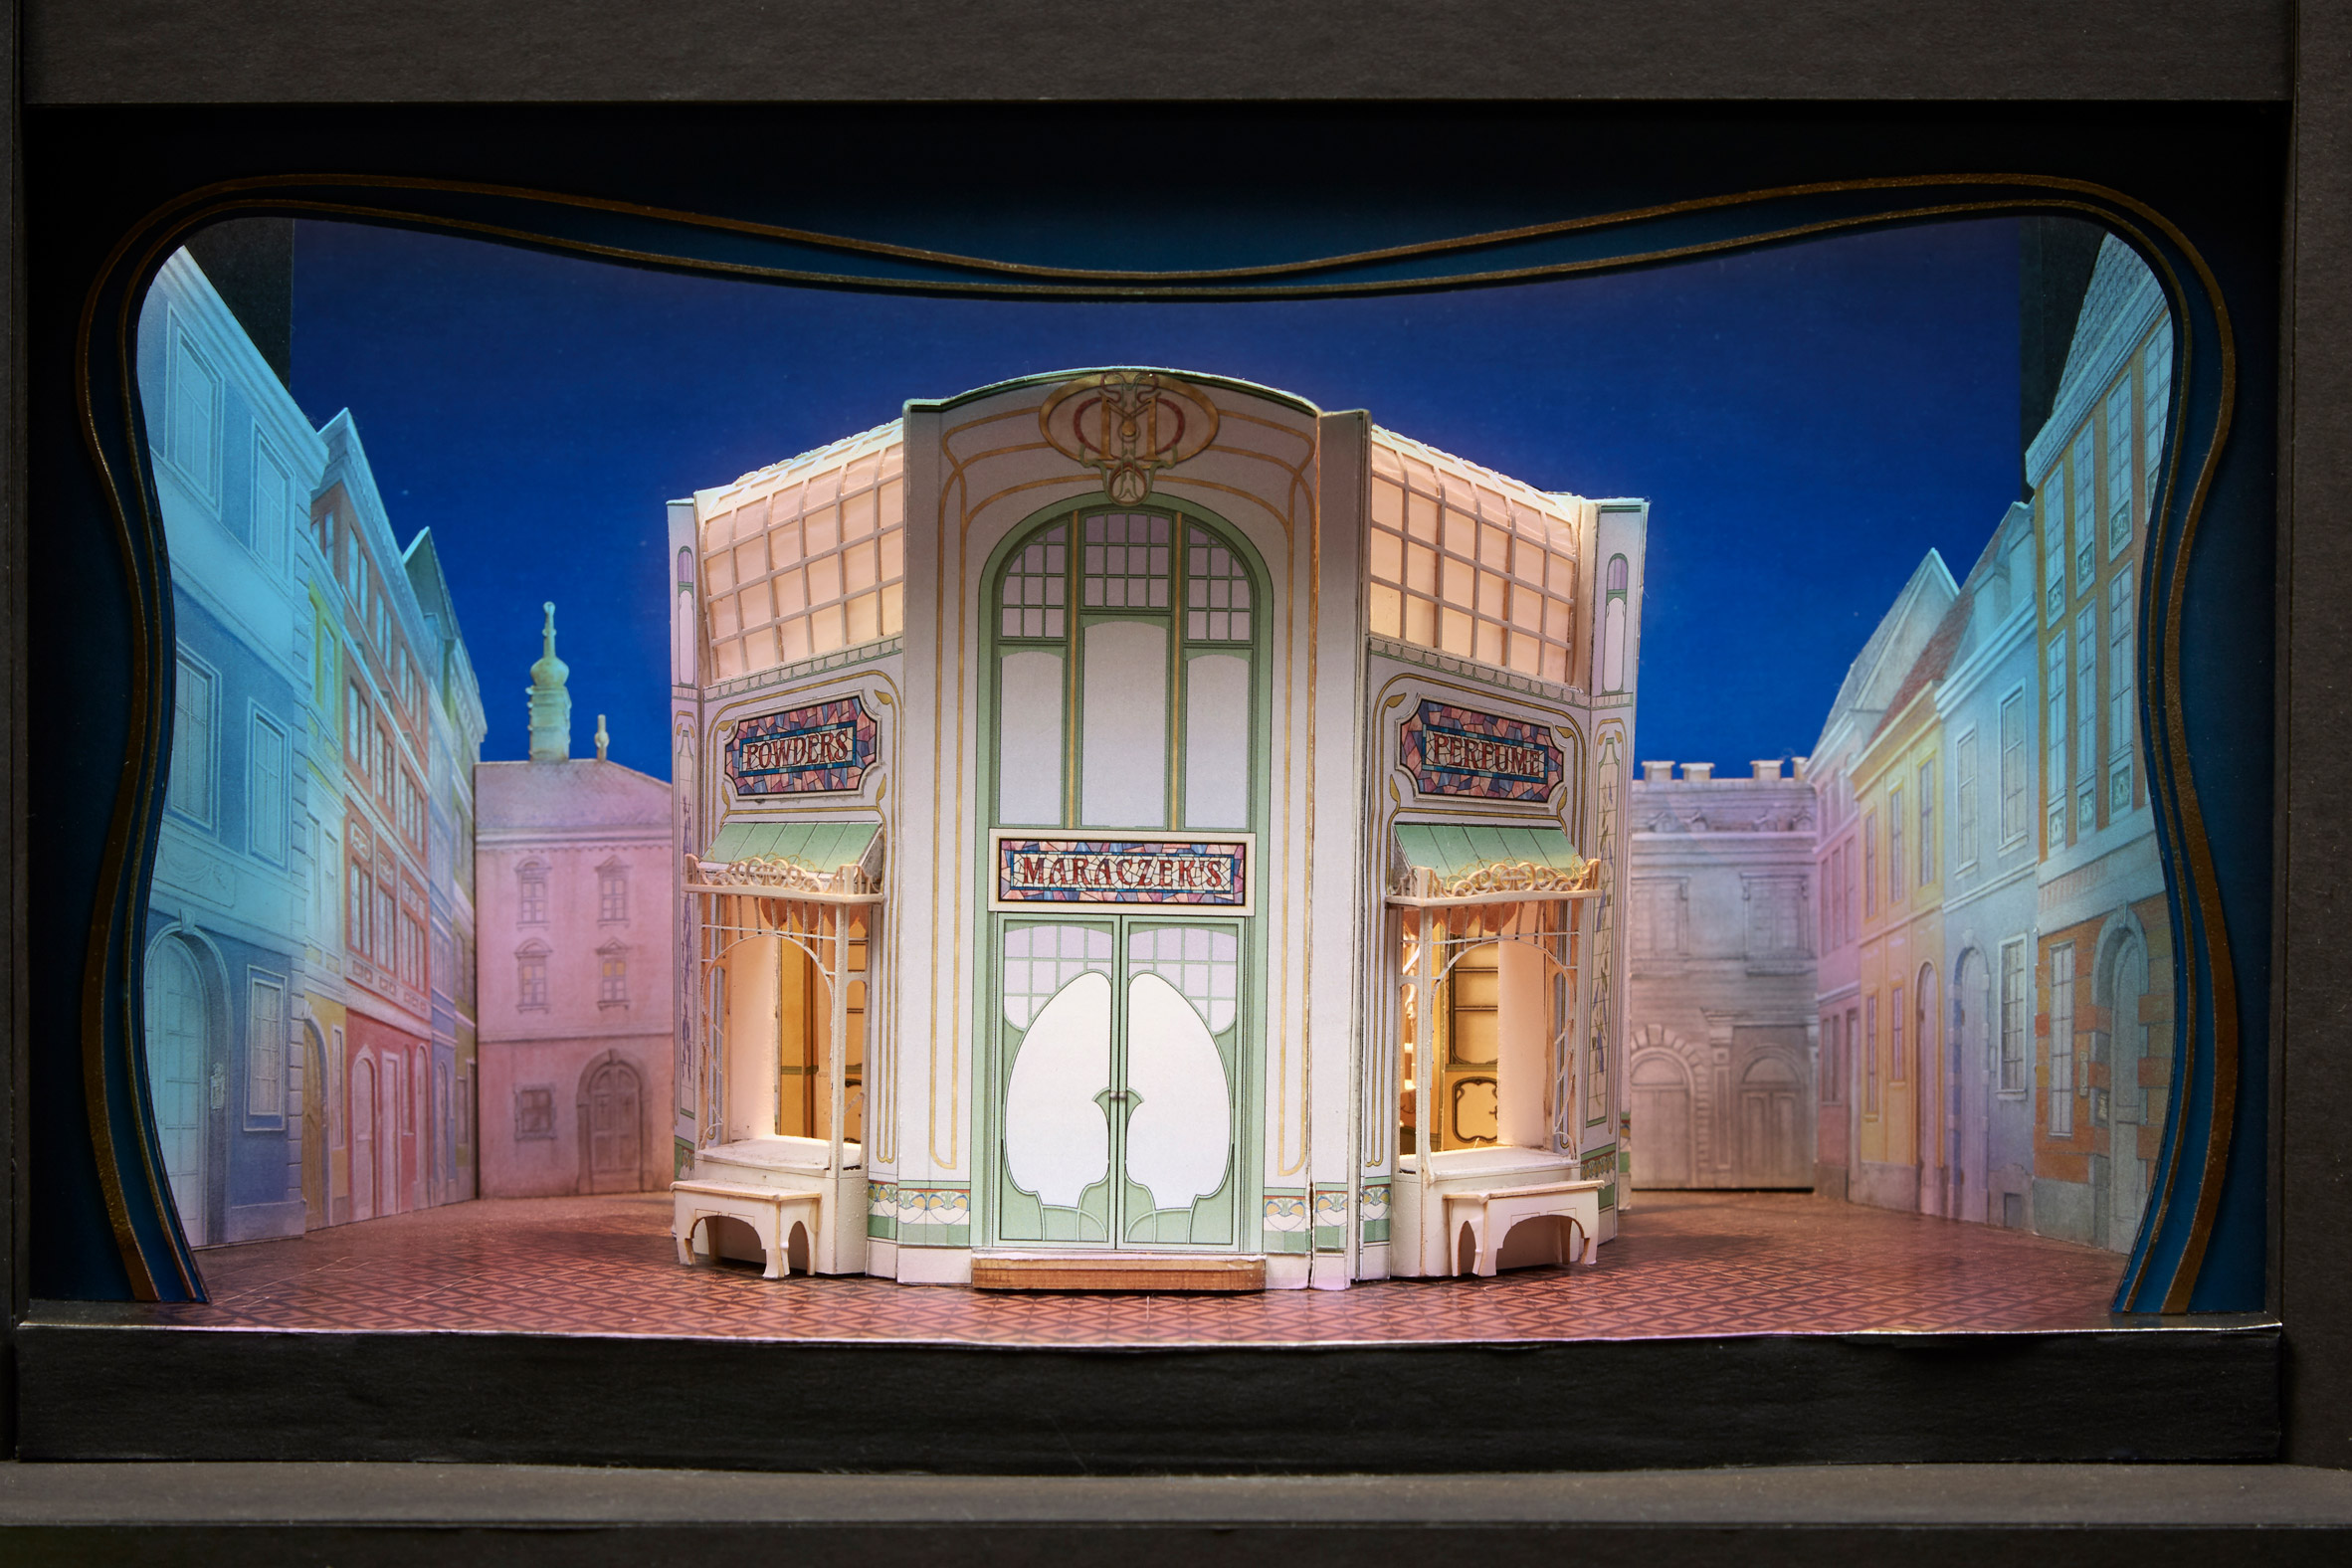 David Rockwell shares photographs of detailed theatre set models